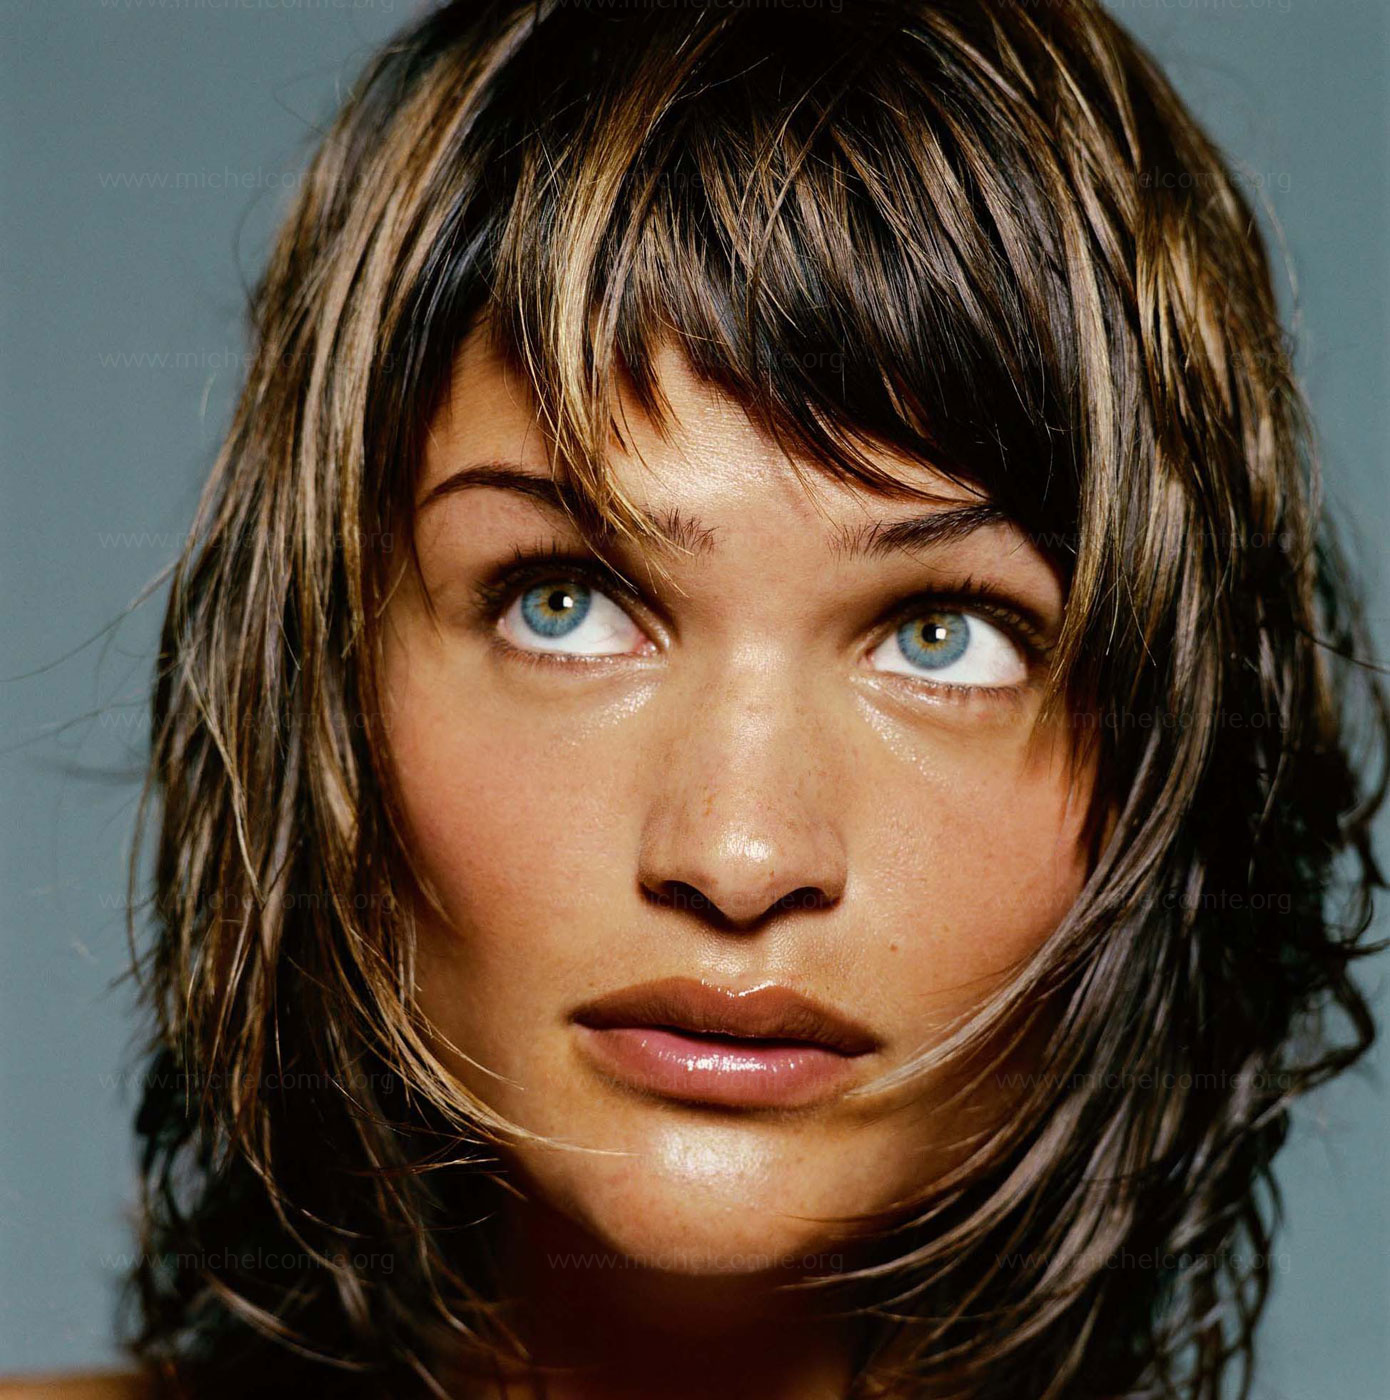 Helena Christensen Eyes - Helena Christensen Net Worth, Pics, Wallpapers, Career and Biography